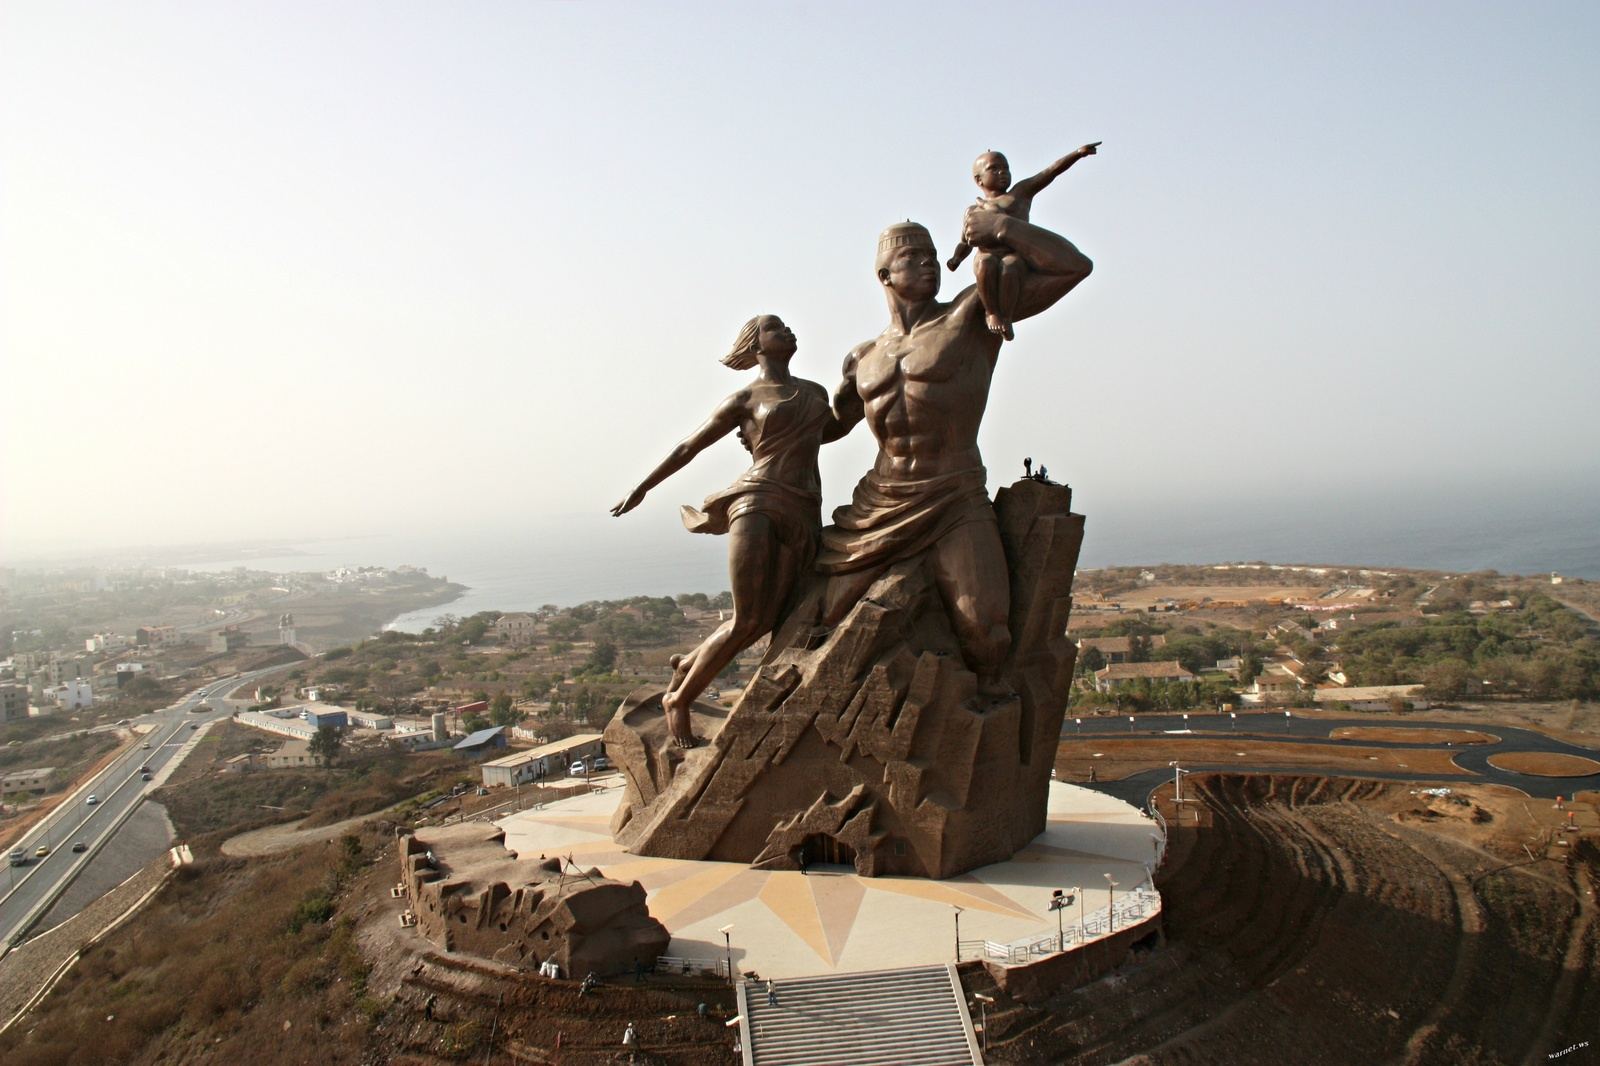 Image: Public monument celebrating the fiftieth anniversary of Senegal's independence from France 2010, copper and bronze, Dakar, Senegal.